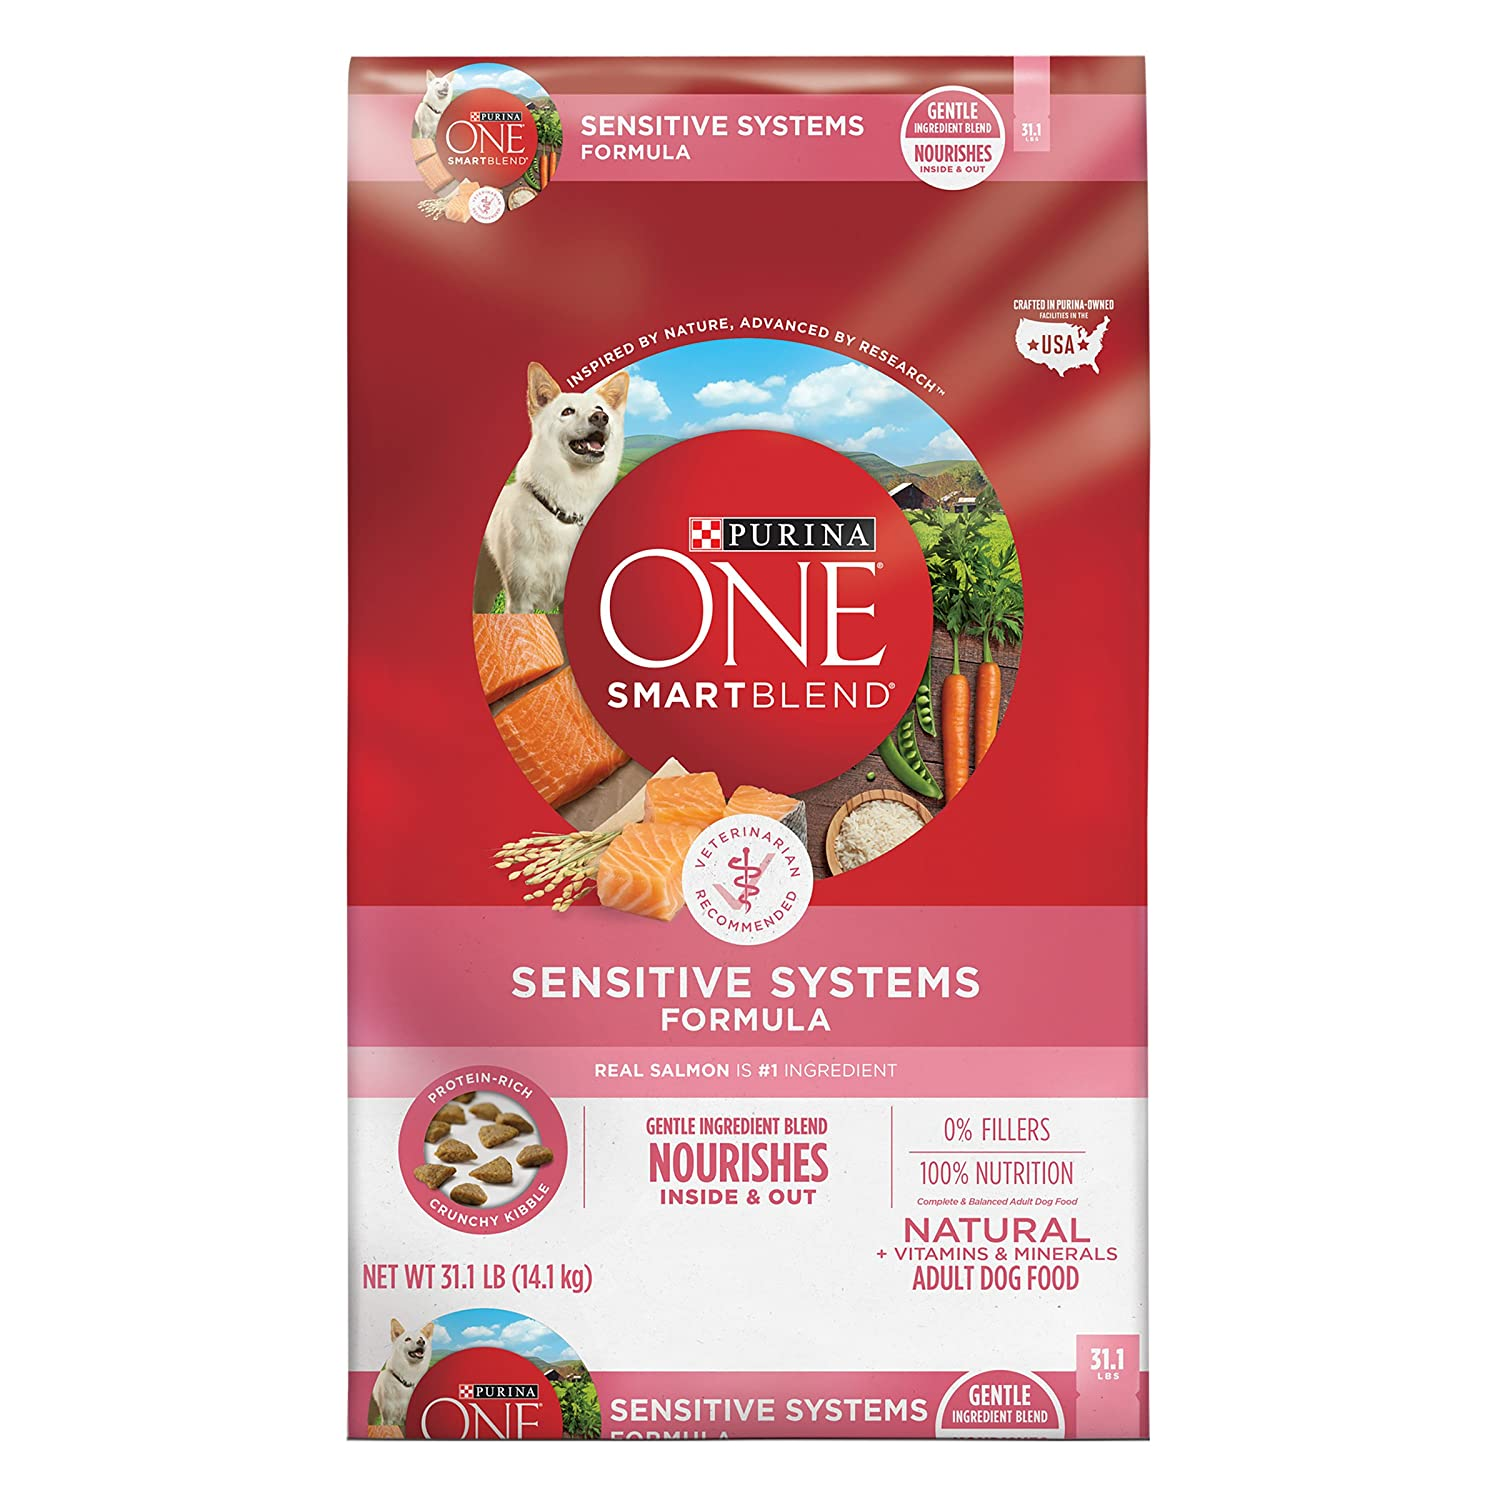 Purina ONE SmartBlend Natural Sensitive Systems Formula Adult Dry Dog Food